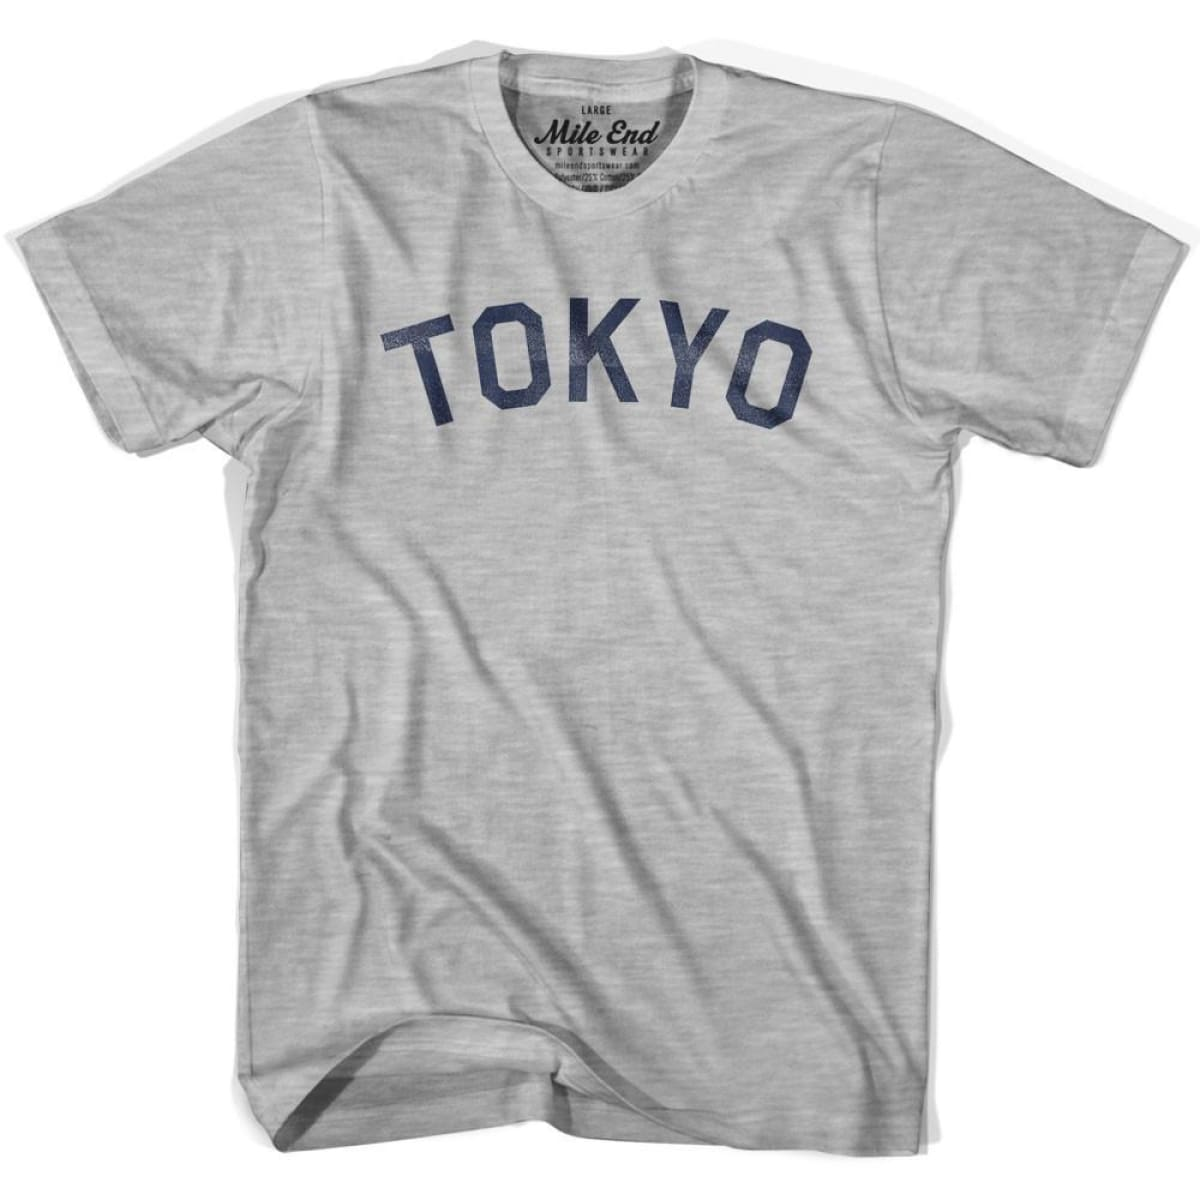 Tokyo City Vintage T-shirt - Grey Heather / Youth X-Small - Mile End City